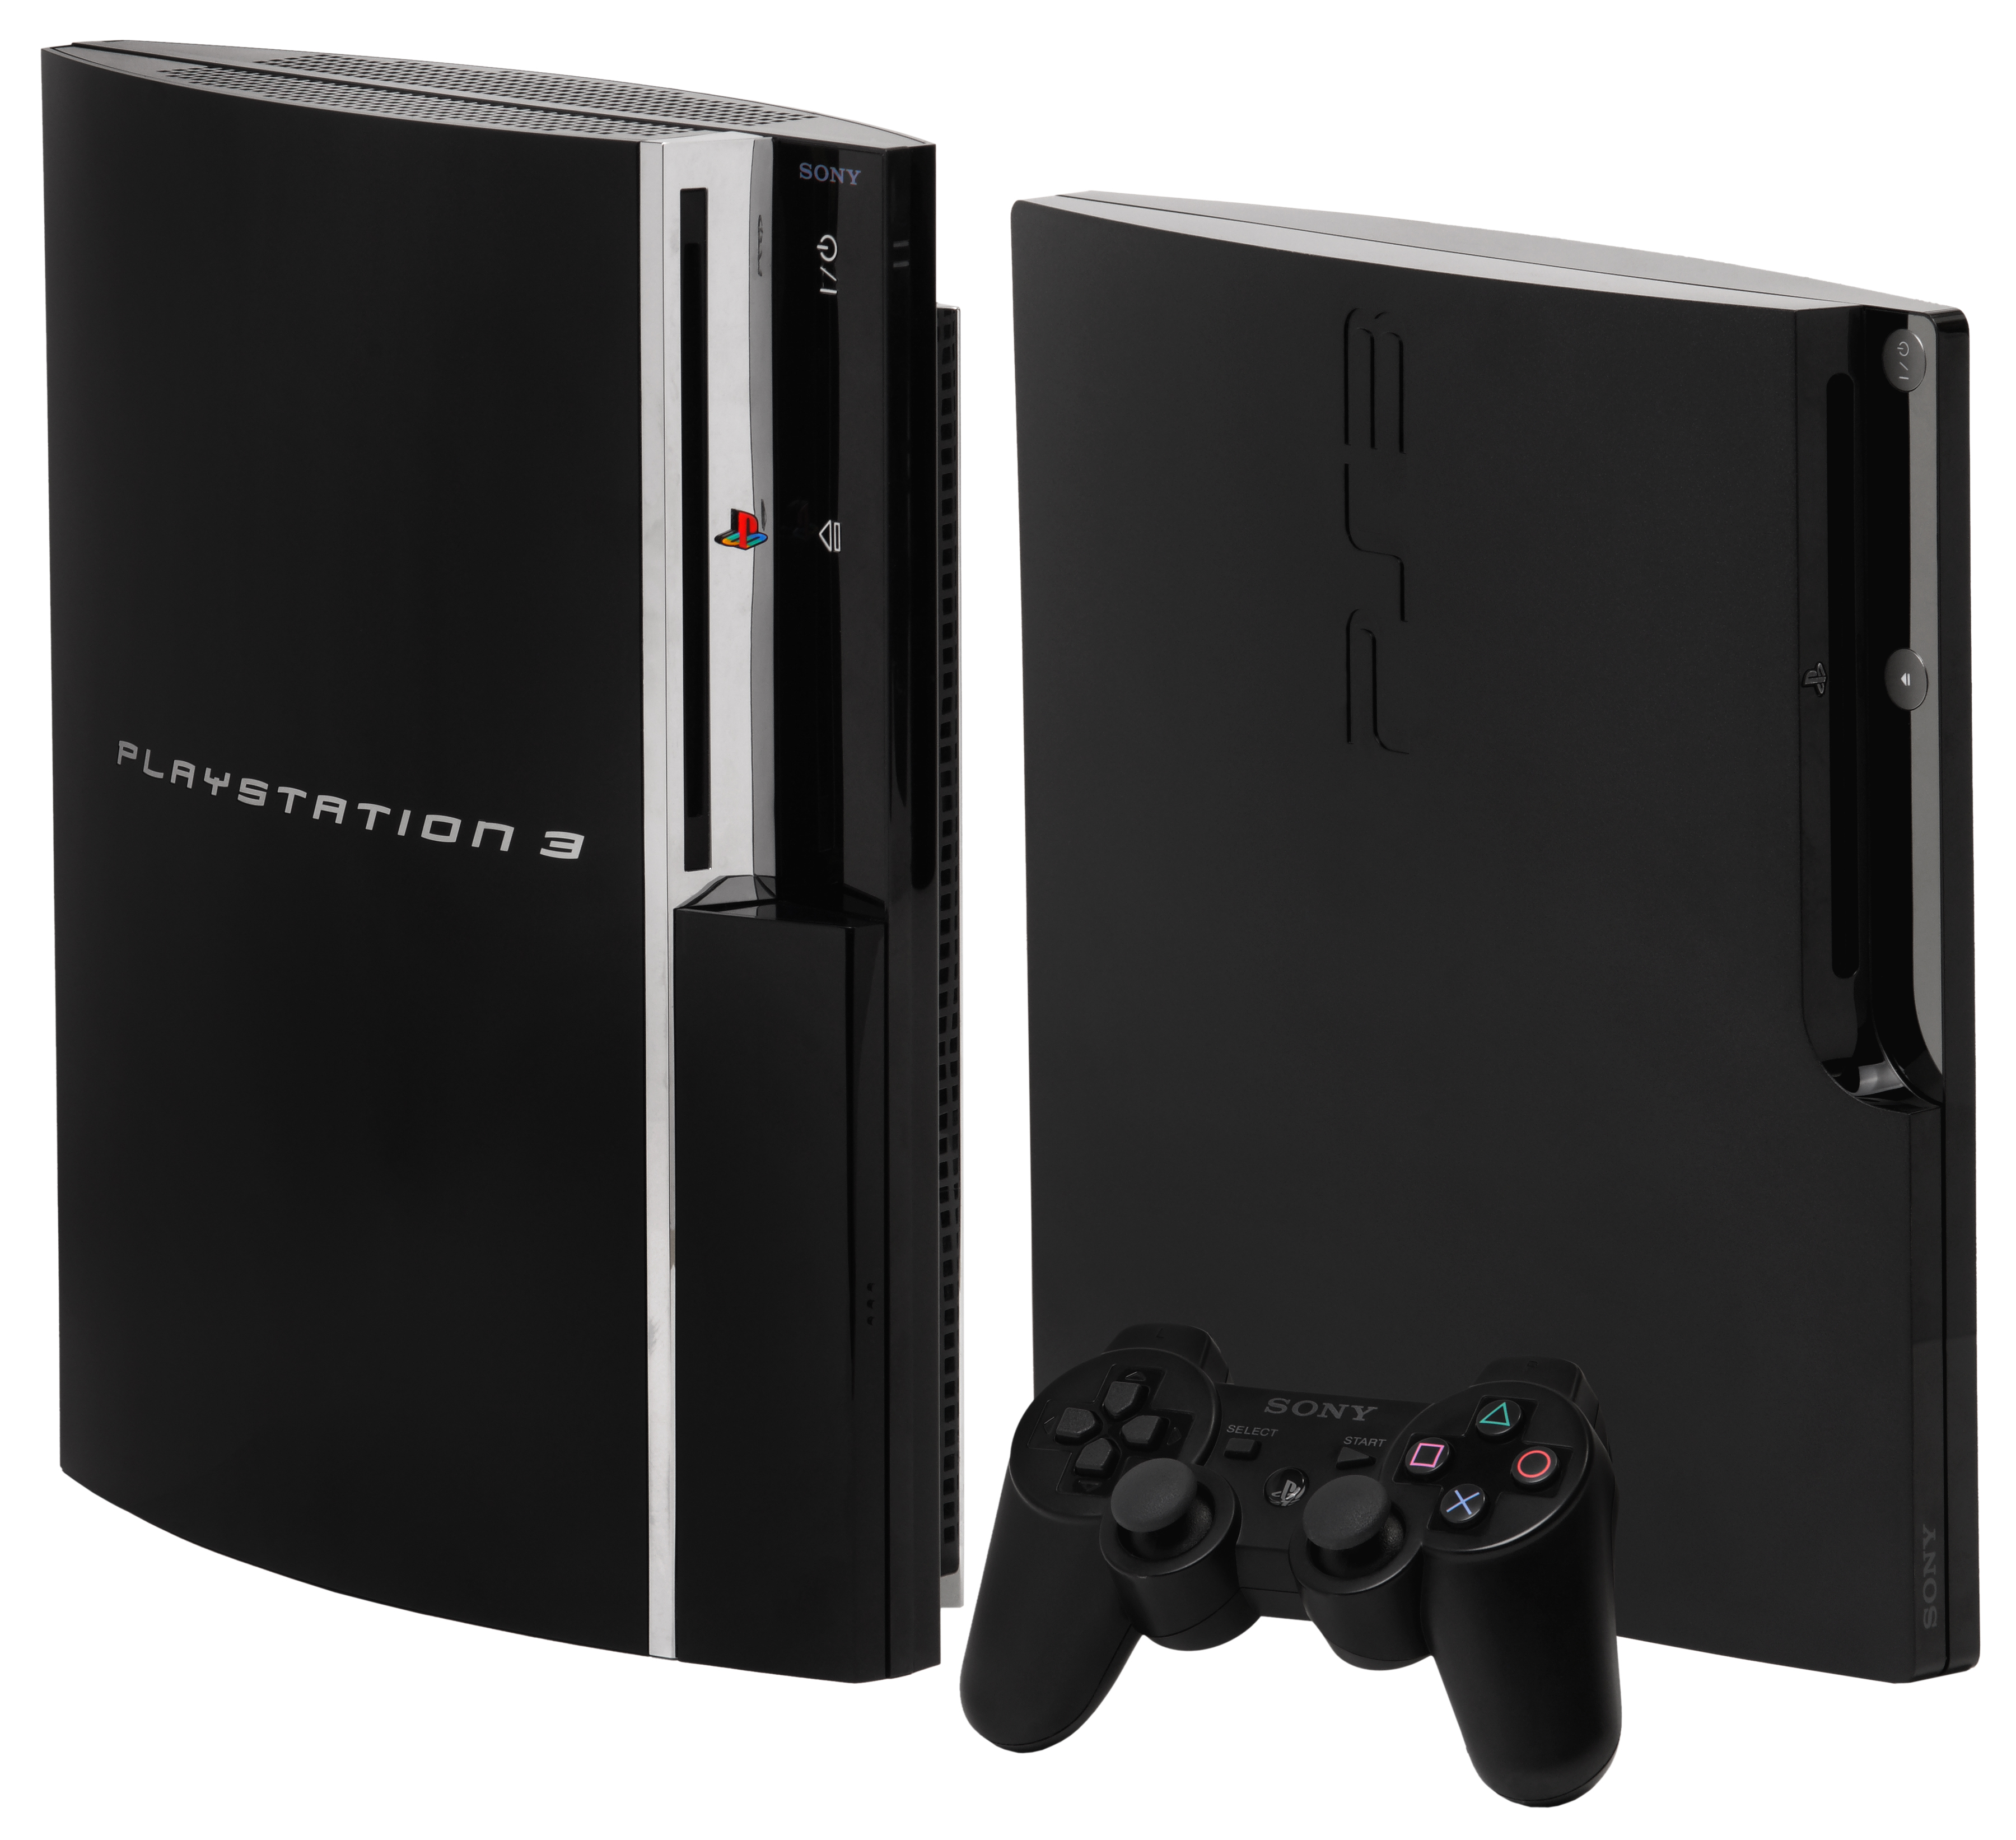 Description PS3 Consoles Set